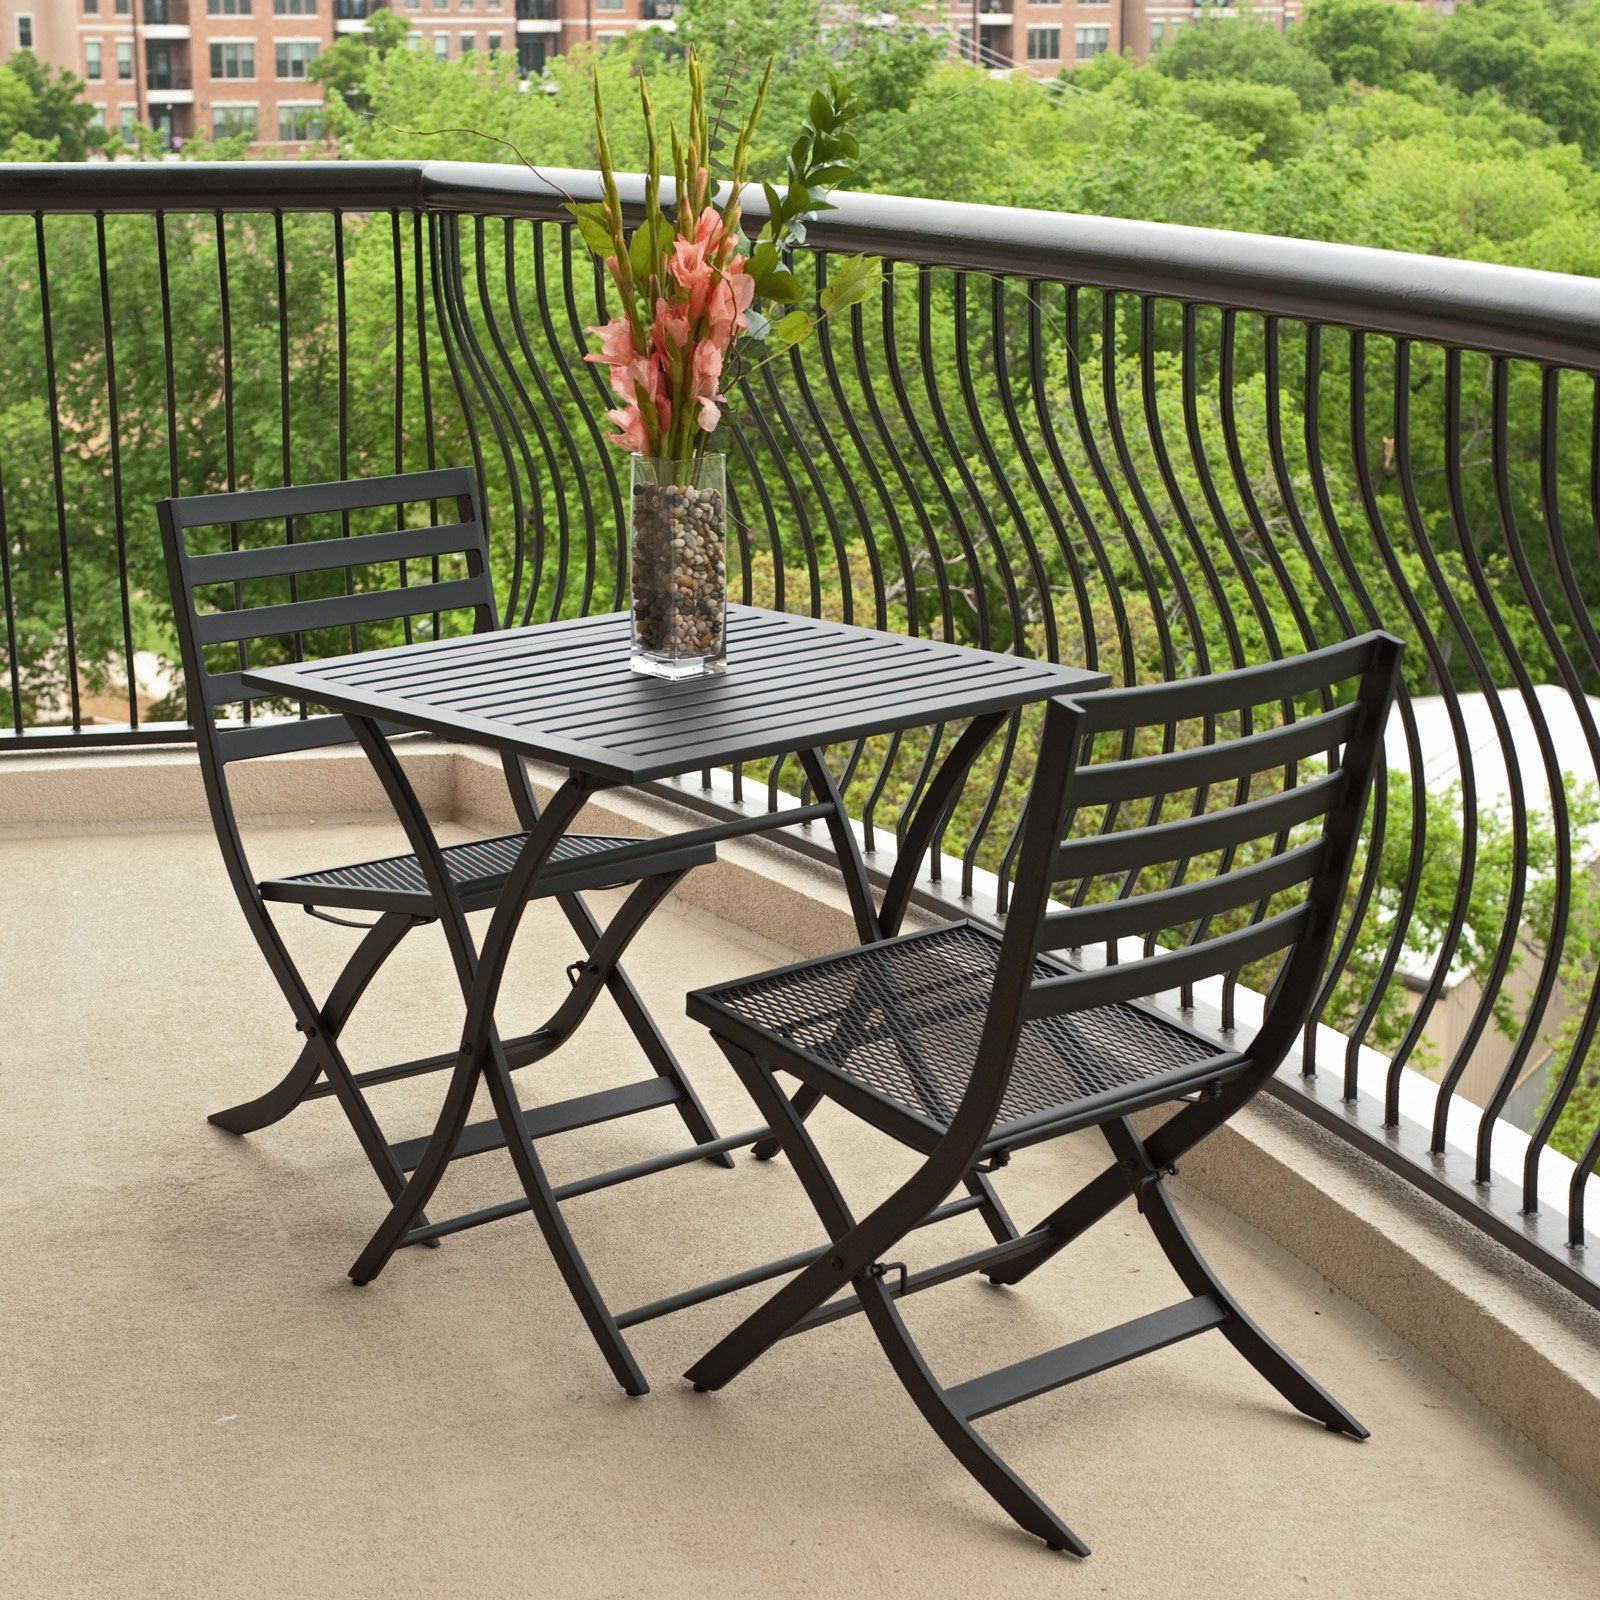 Woodard Avery Bistro Set $799 for set this is a good choice